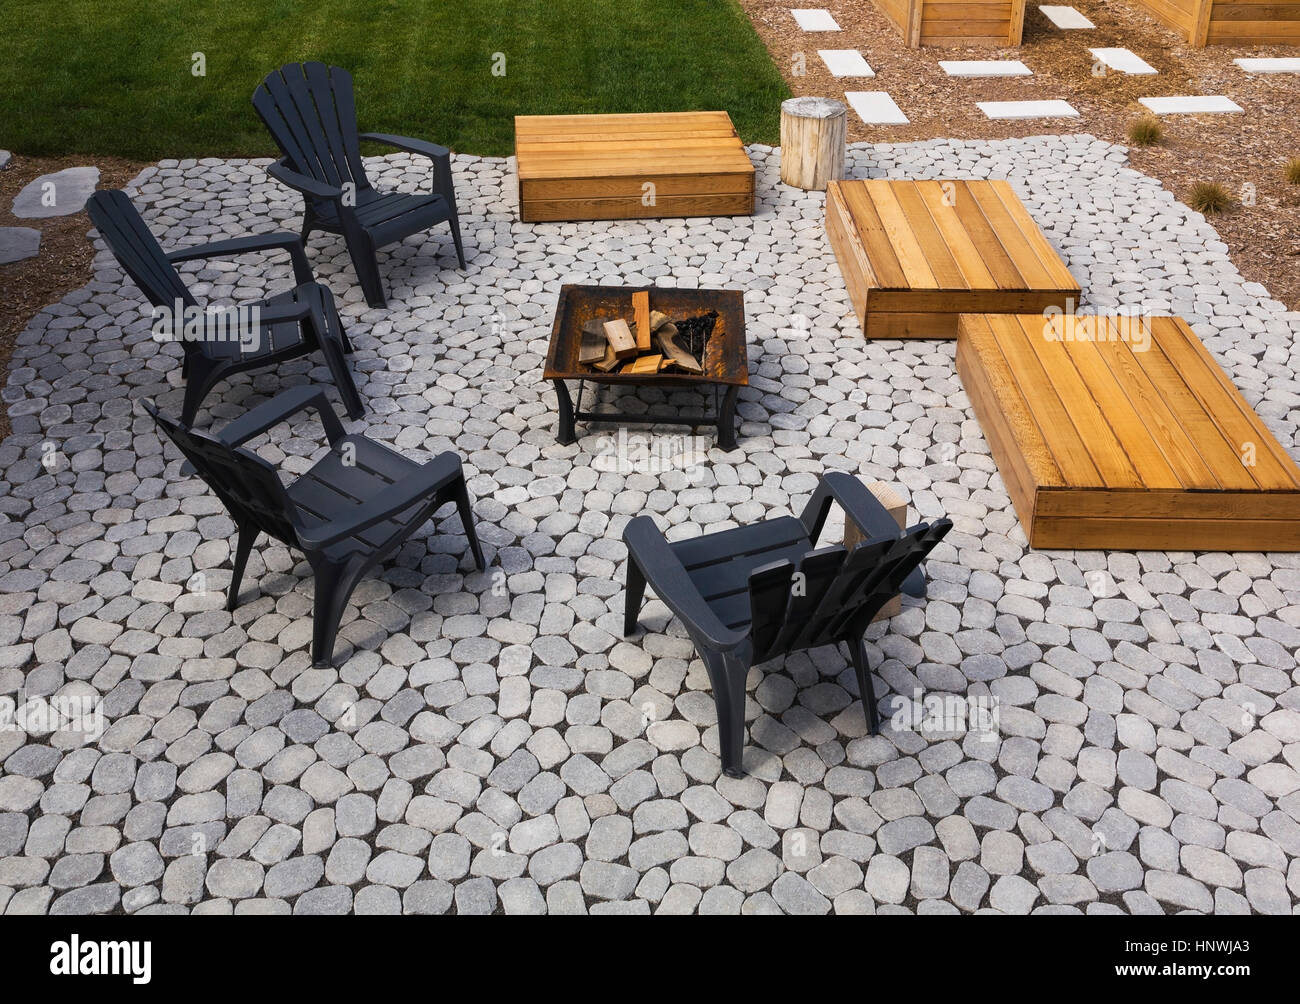 Paving Stone Patio With Adirondack Chairs, Red Cedar Wooden Bench Platforms  Around A Metal Firepit